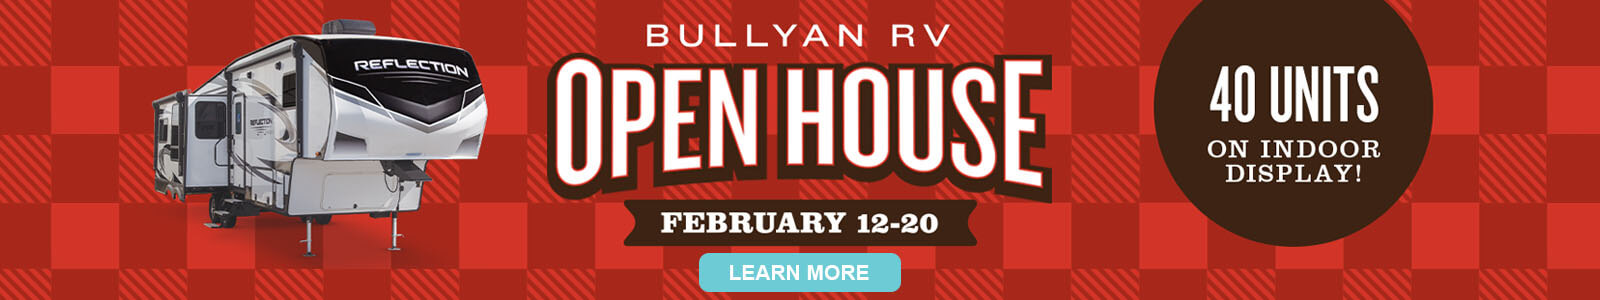 Bullyan RV Open House - February 12-20